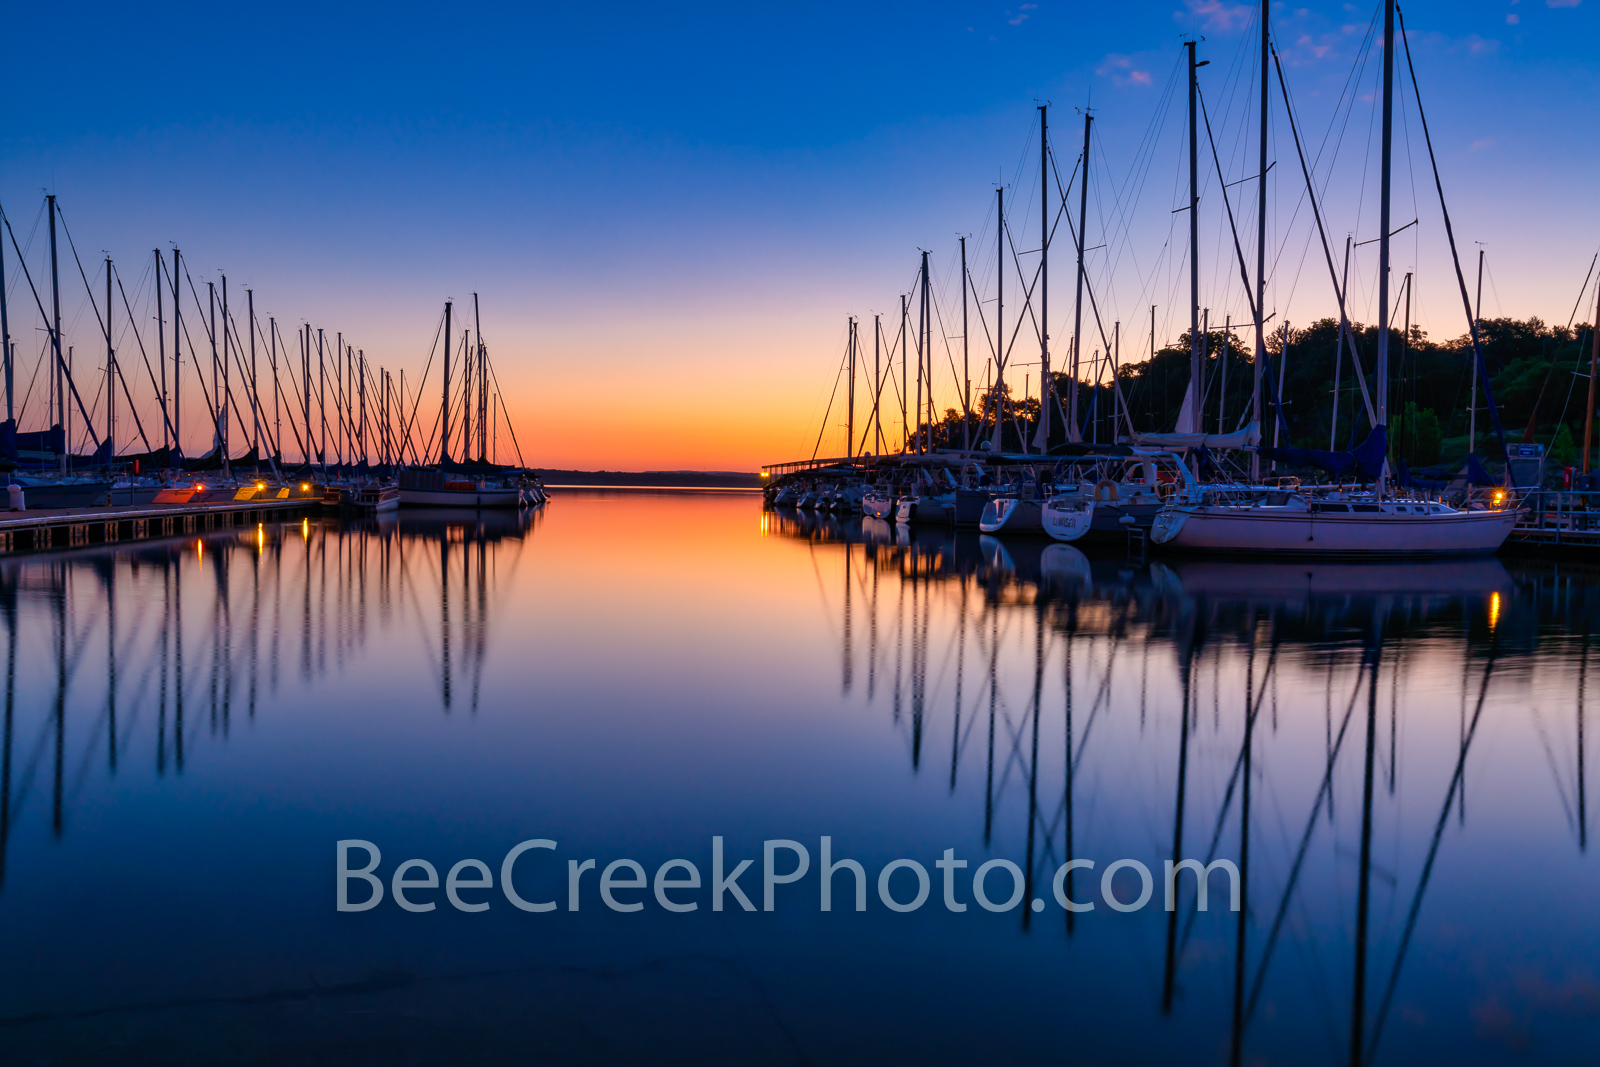 First Light at Lake Travis - We capture the first light over this marina on Lake Travis outside of Austin Texas. The water was...